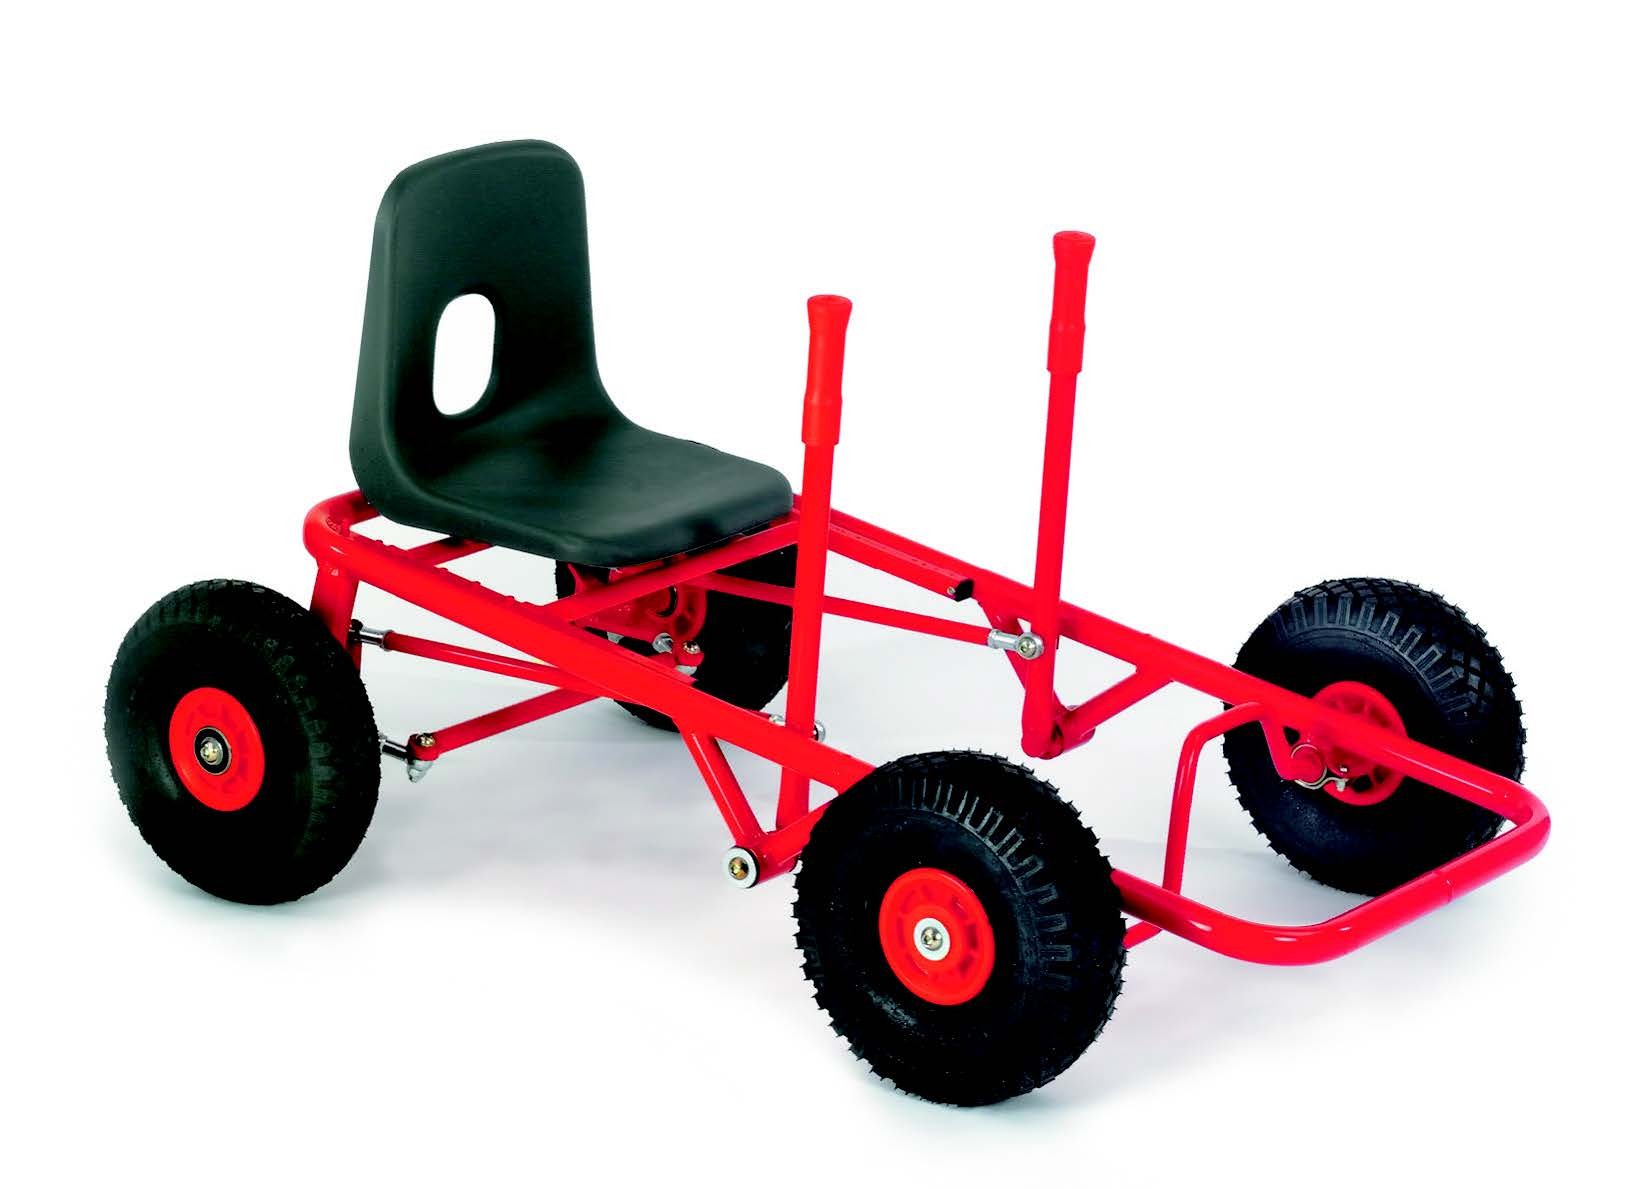 4 Wheel Go Kart with Adjustable Seat